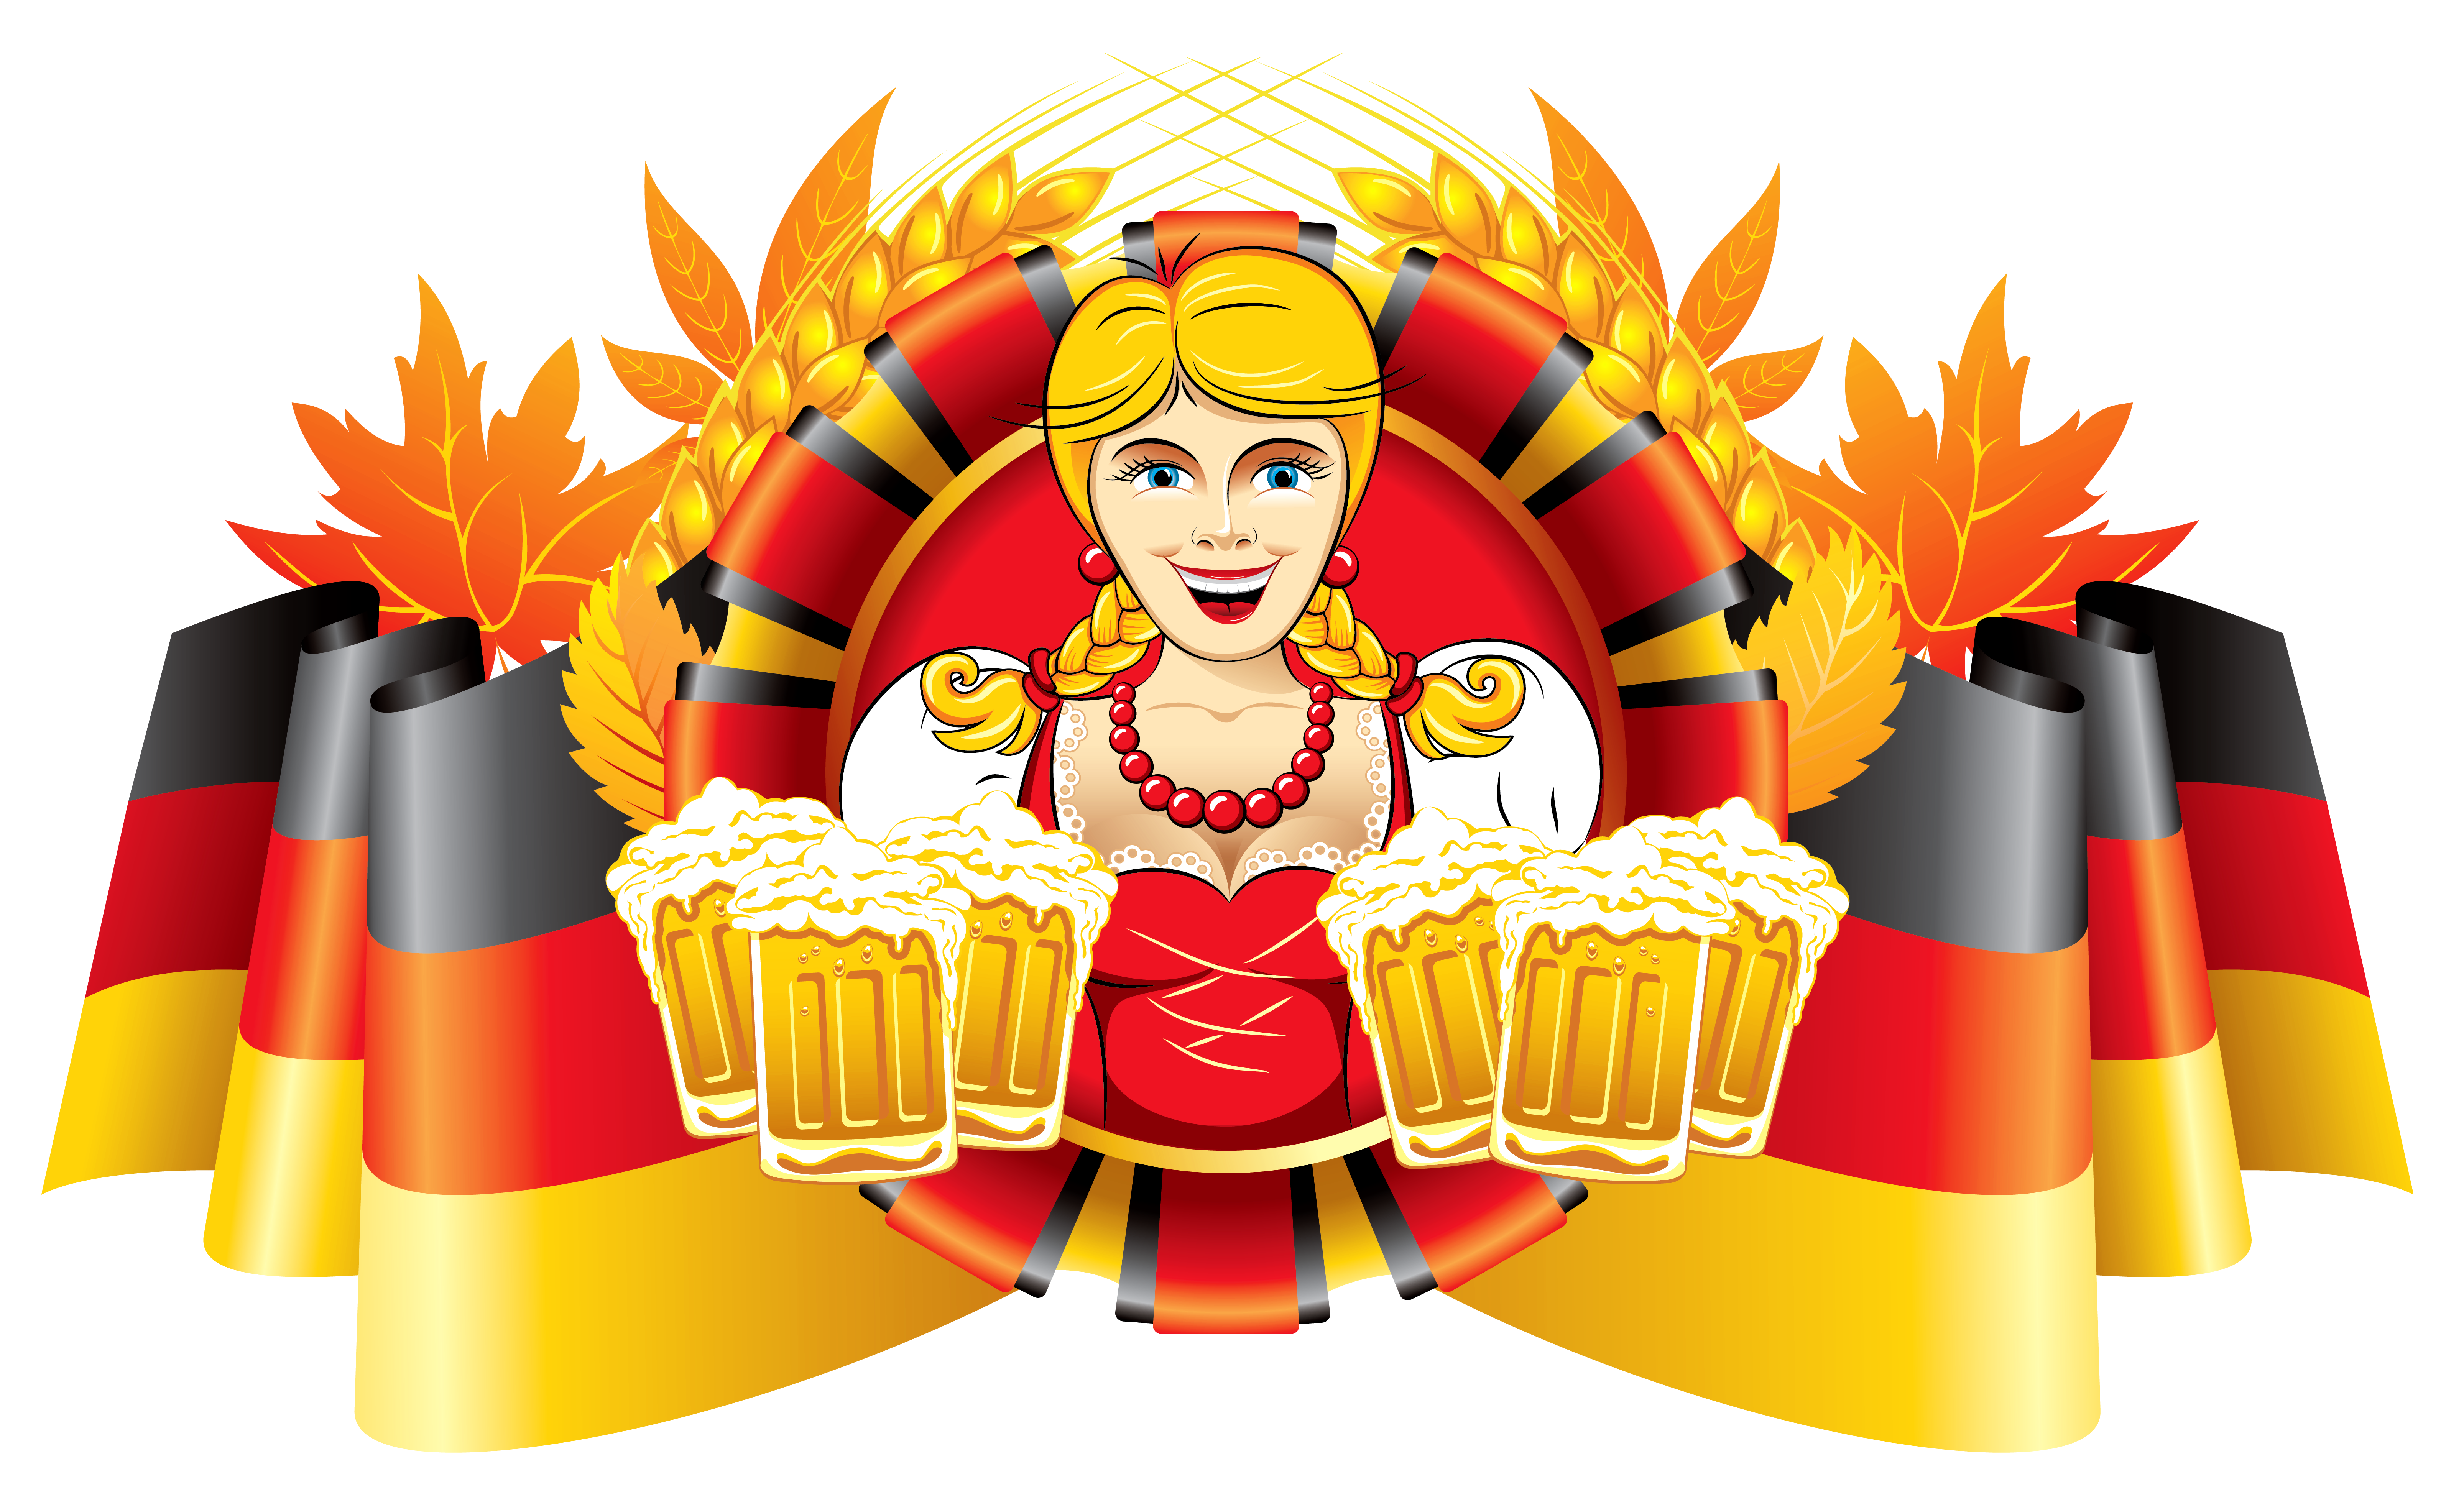 Oktoberfest german flag on pole clipart png png transparent stock Oktoberfest Decor German Flag and Girl with Beer | Gallery ... png transparent stock